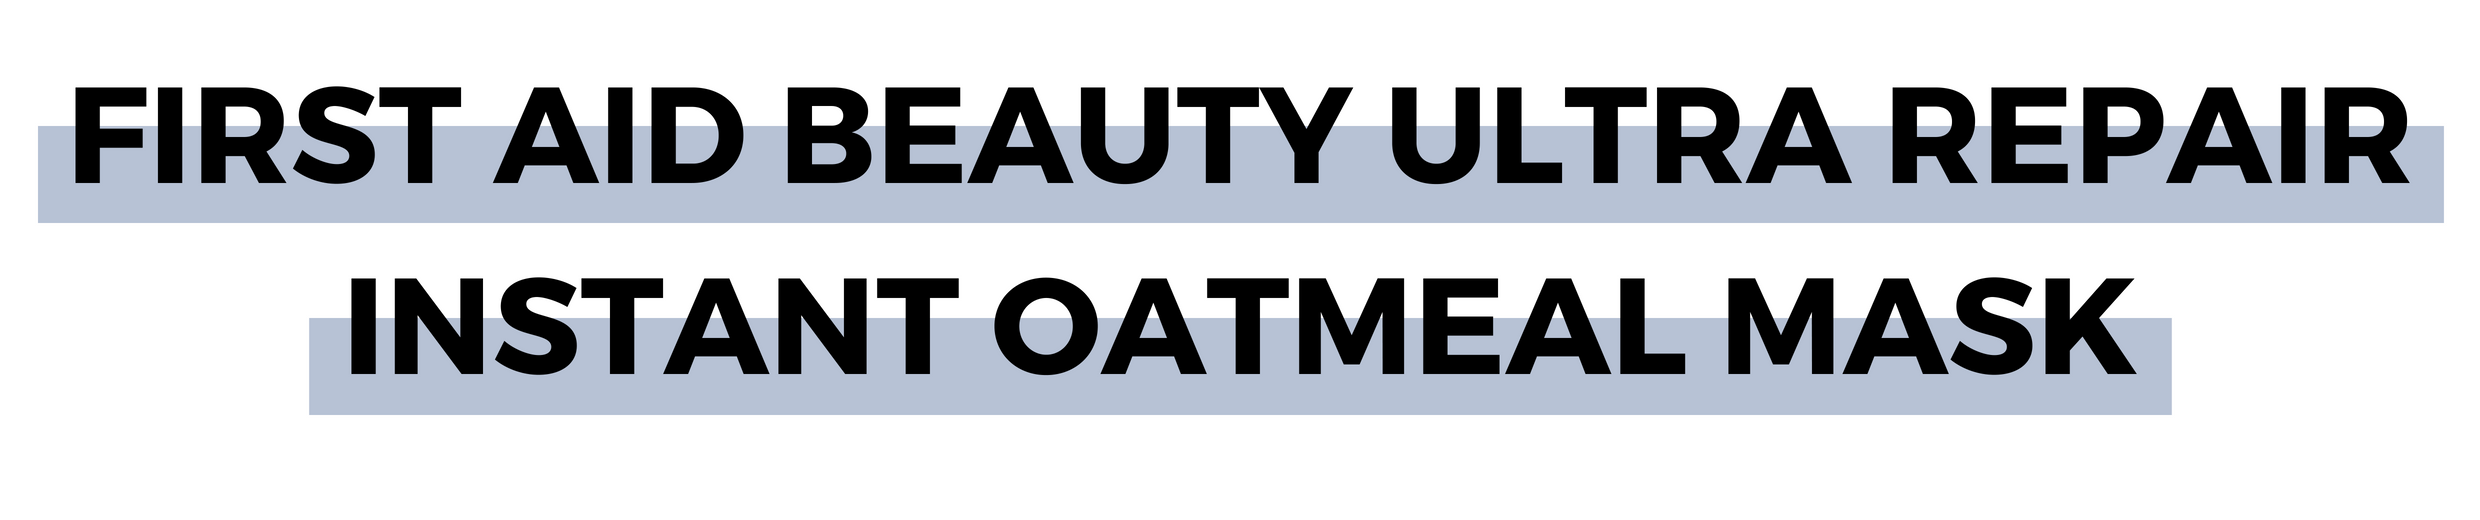 FIRST AID BEAUTY ULTRA REPAIR INSTANT OATMEAL MASK.png